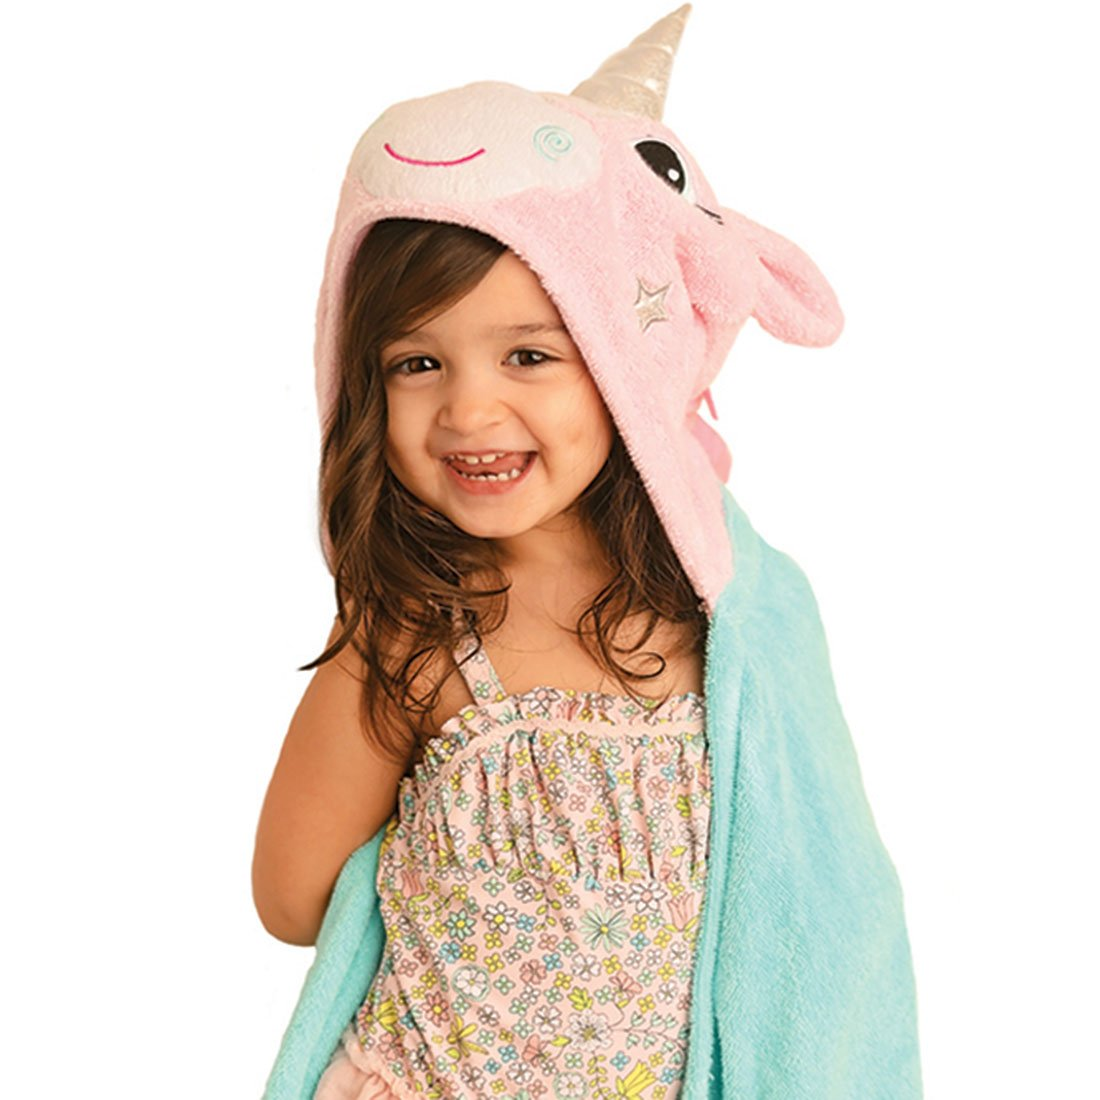 ZOOCCHINI Kids Plush Terry Hooded Bath Towel - Allie the Alicorn